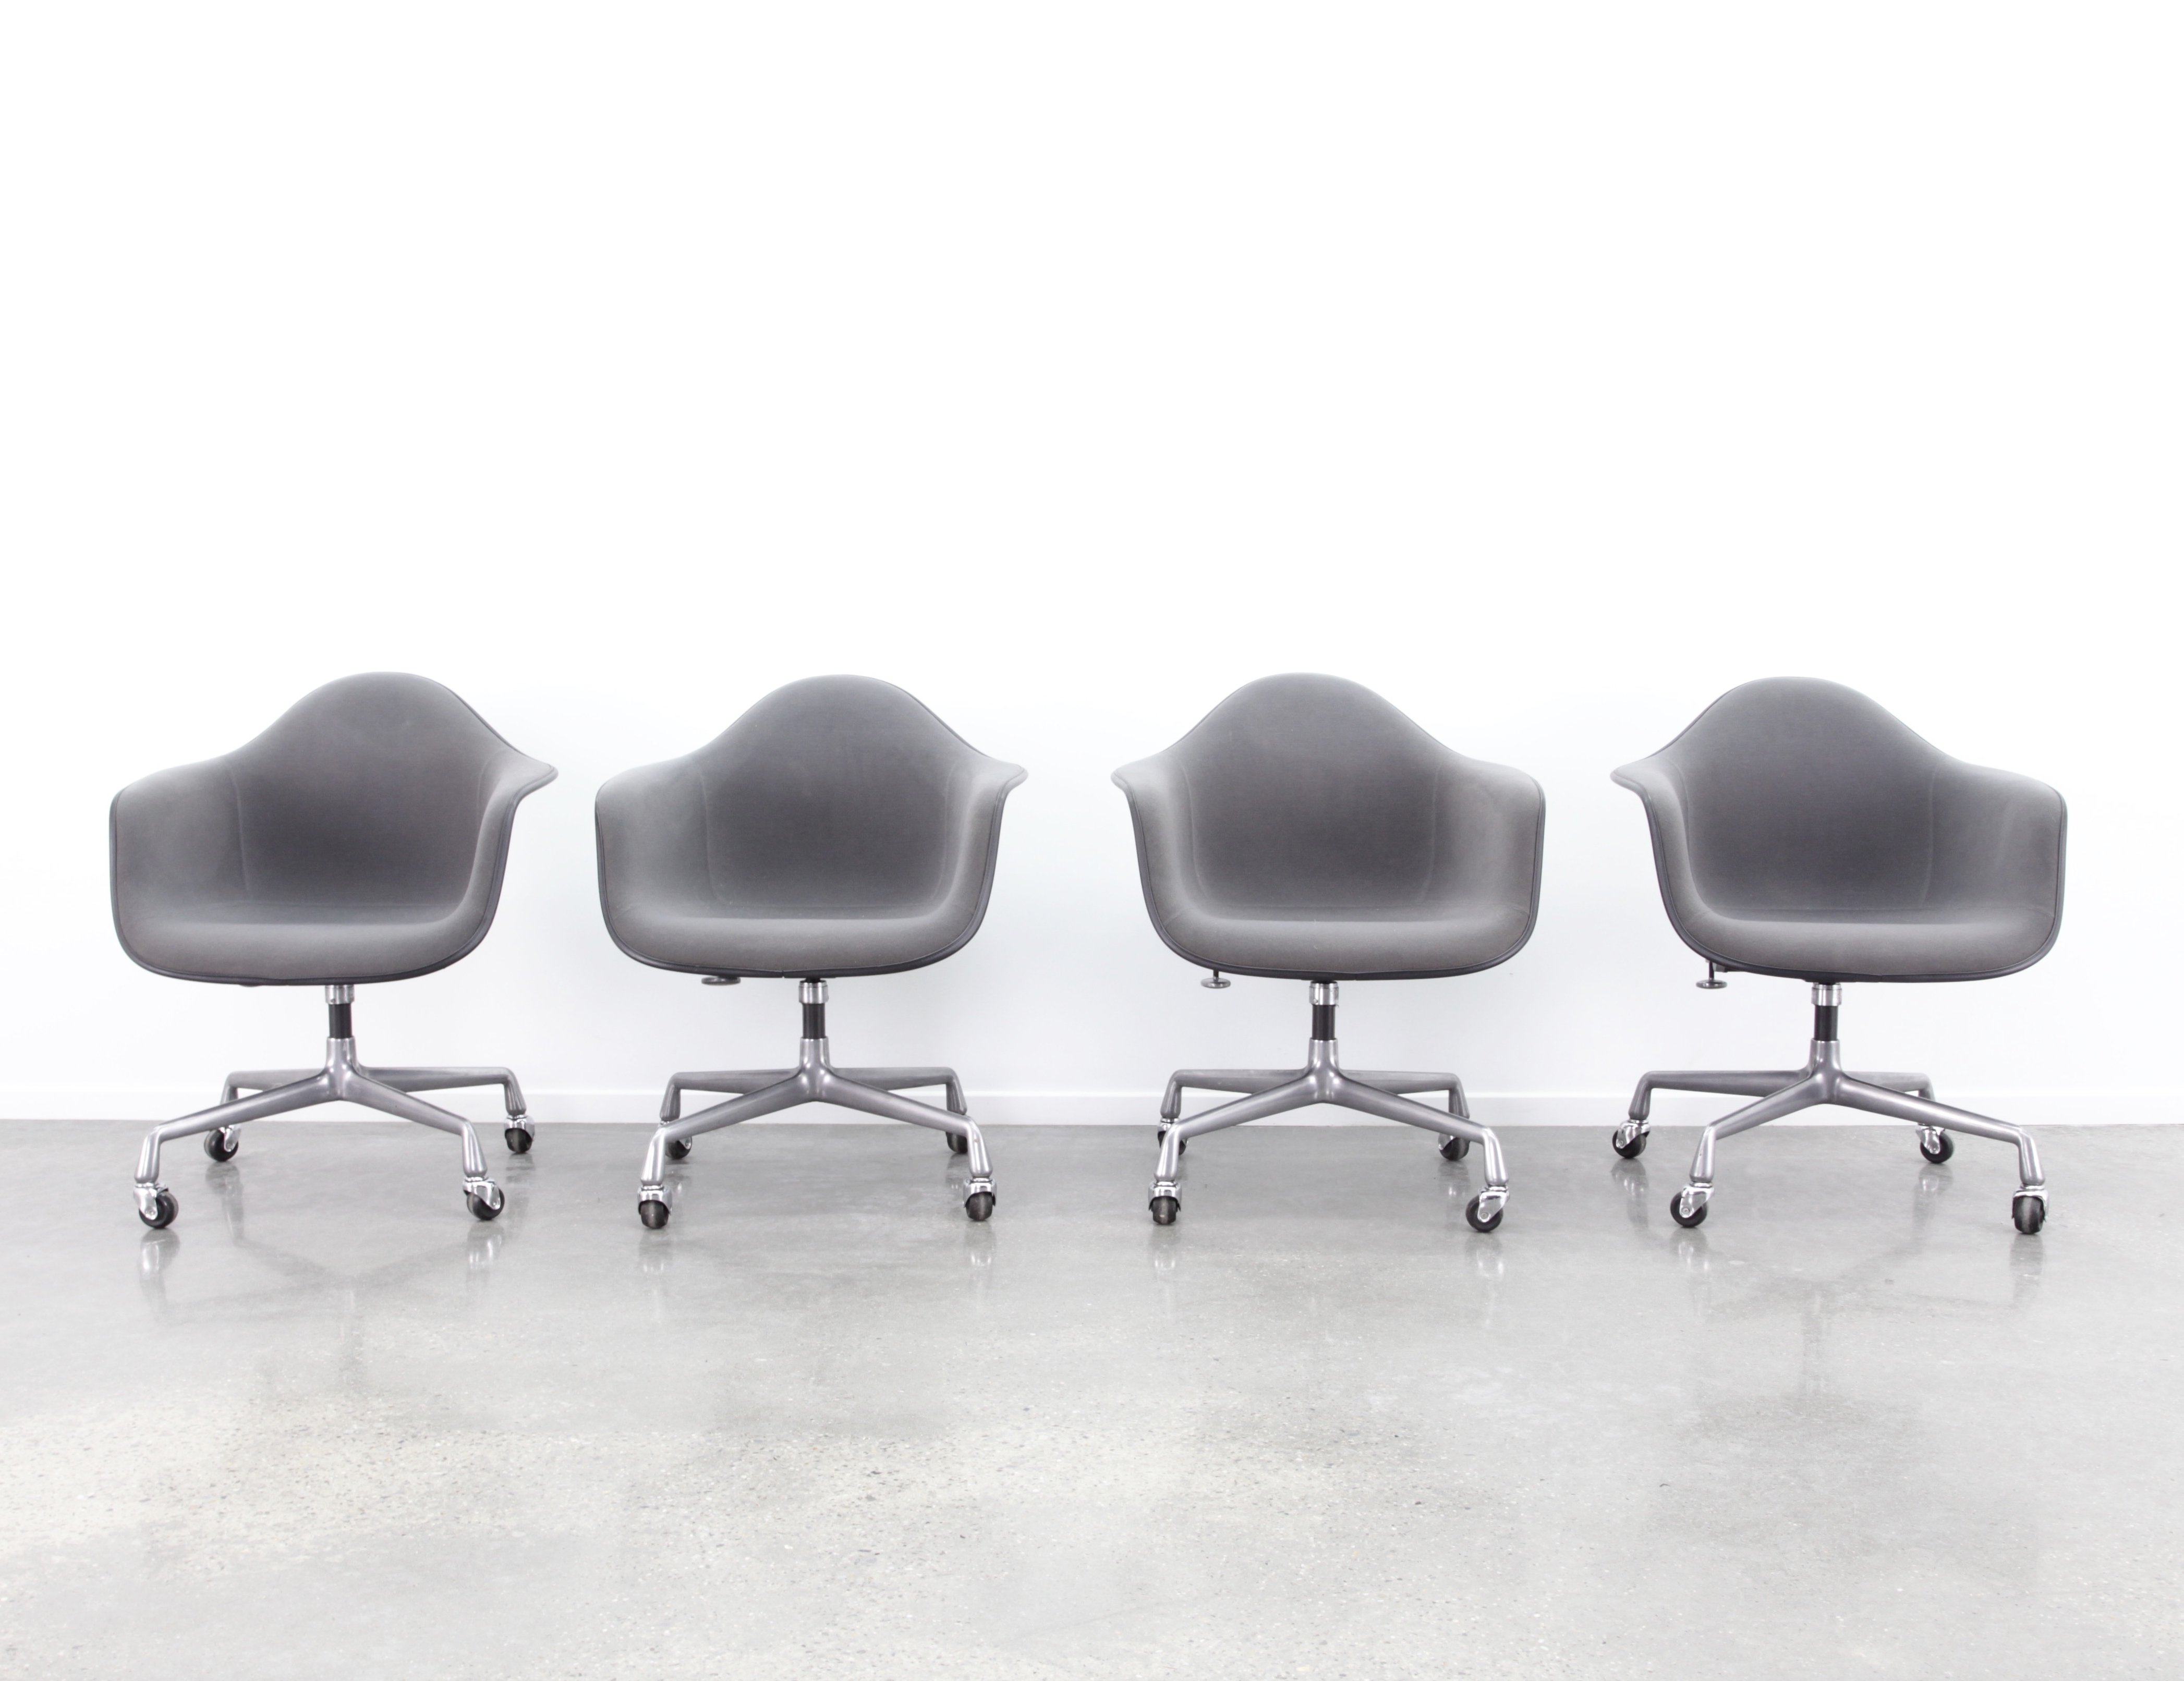 new concept 7112a 02b16 4 x PACC office chair by Charles & Ray Eames for Herman Miller, 1980s